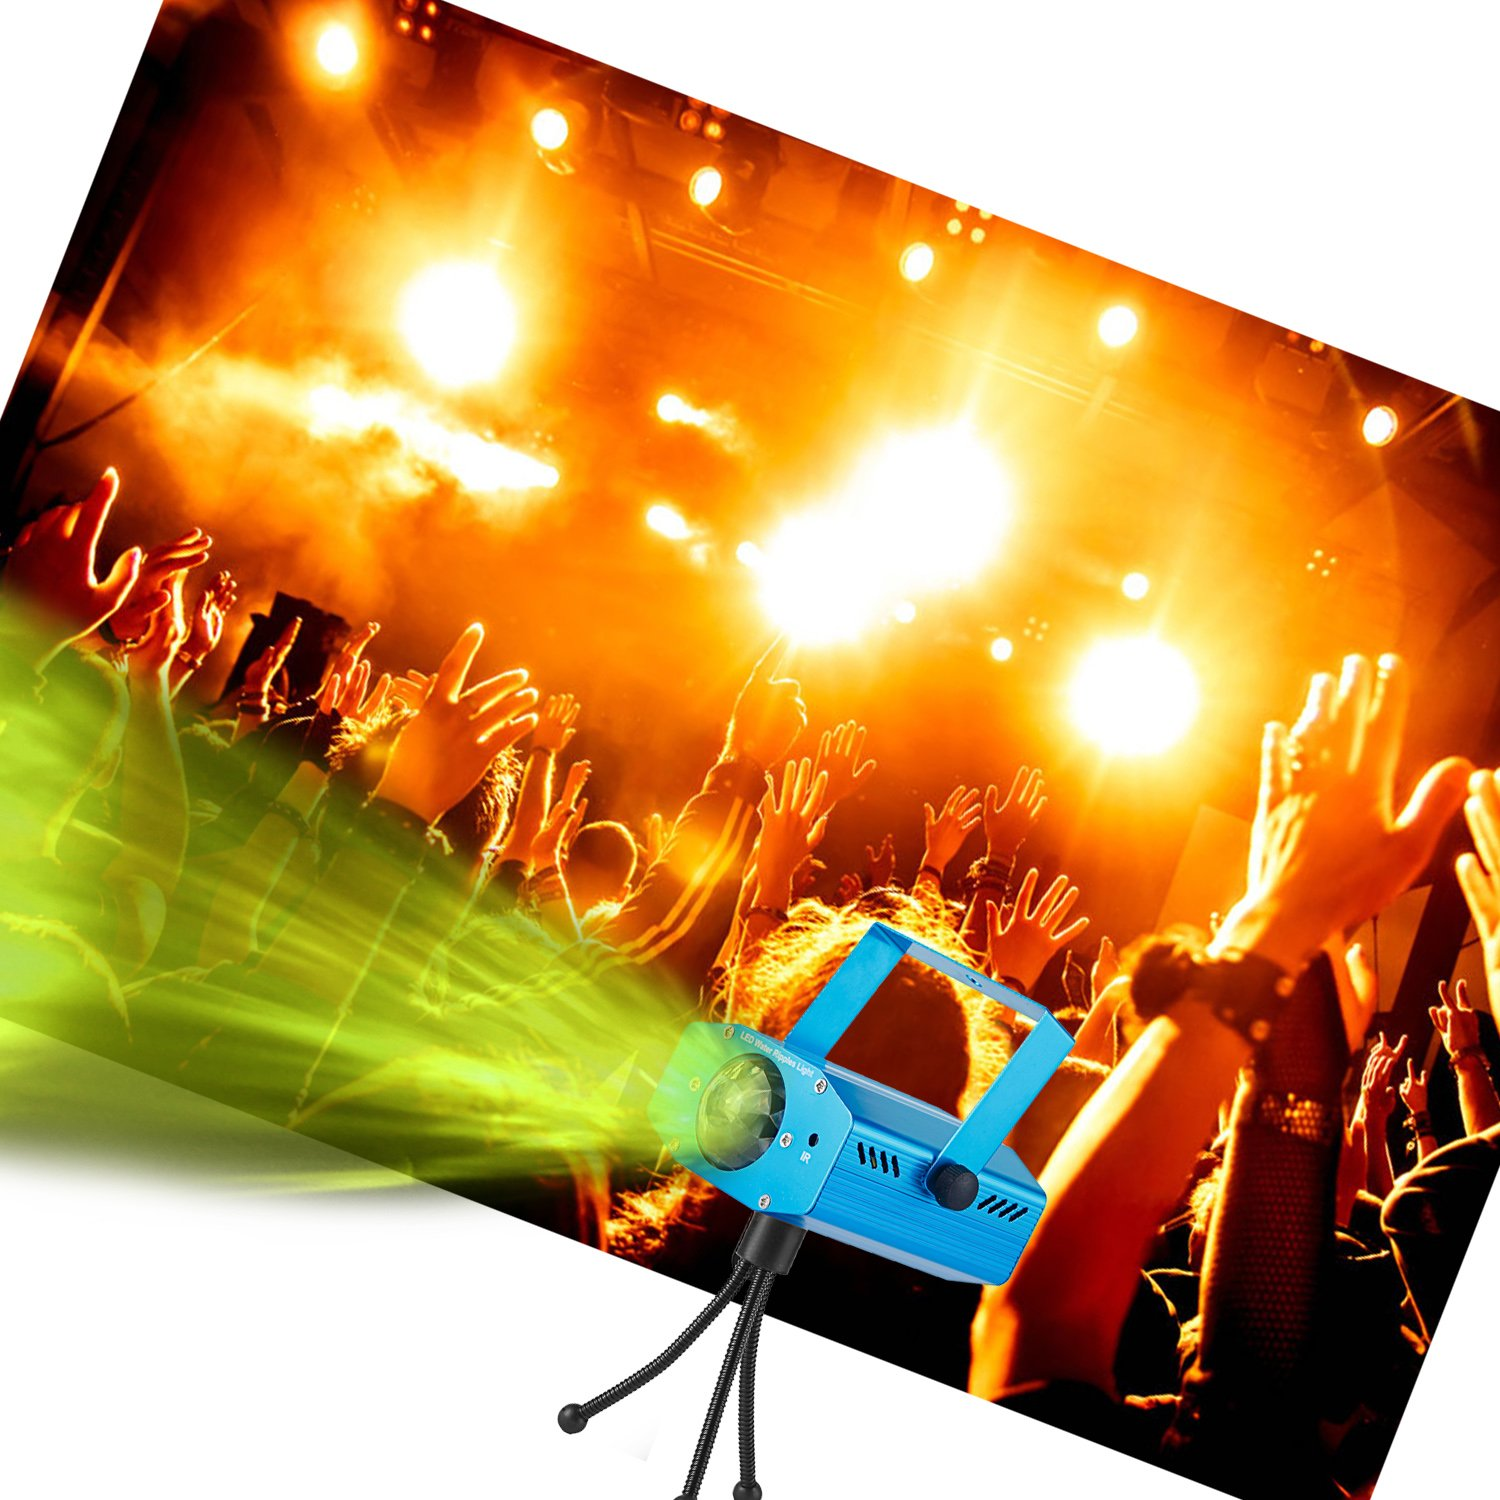 Party Projector Stage Light, PEMOTech 7-Color Ocean Wave Sound Activated Strobe Light Disco Ball Light Remote Control LED Projector Light for Party, Disco, DJ, KTV, Club, Wedding, Christmas by PEMOTech (Image #3)